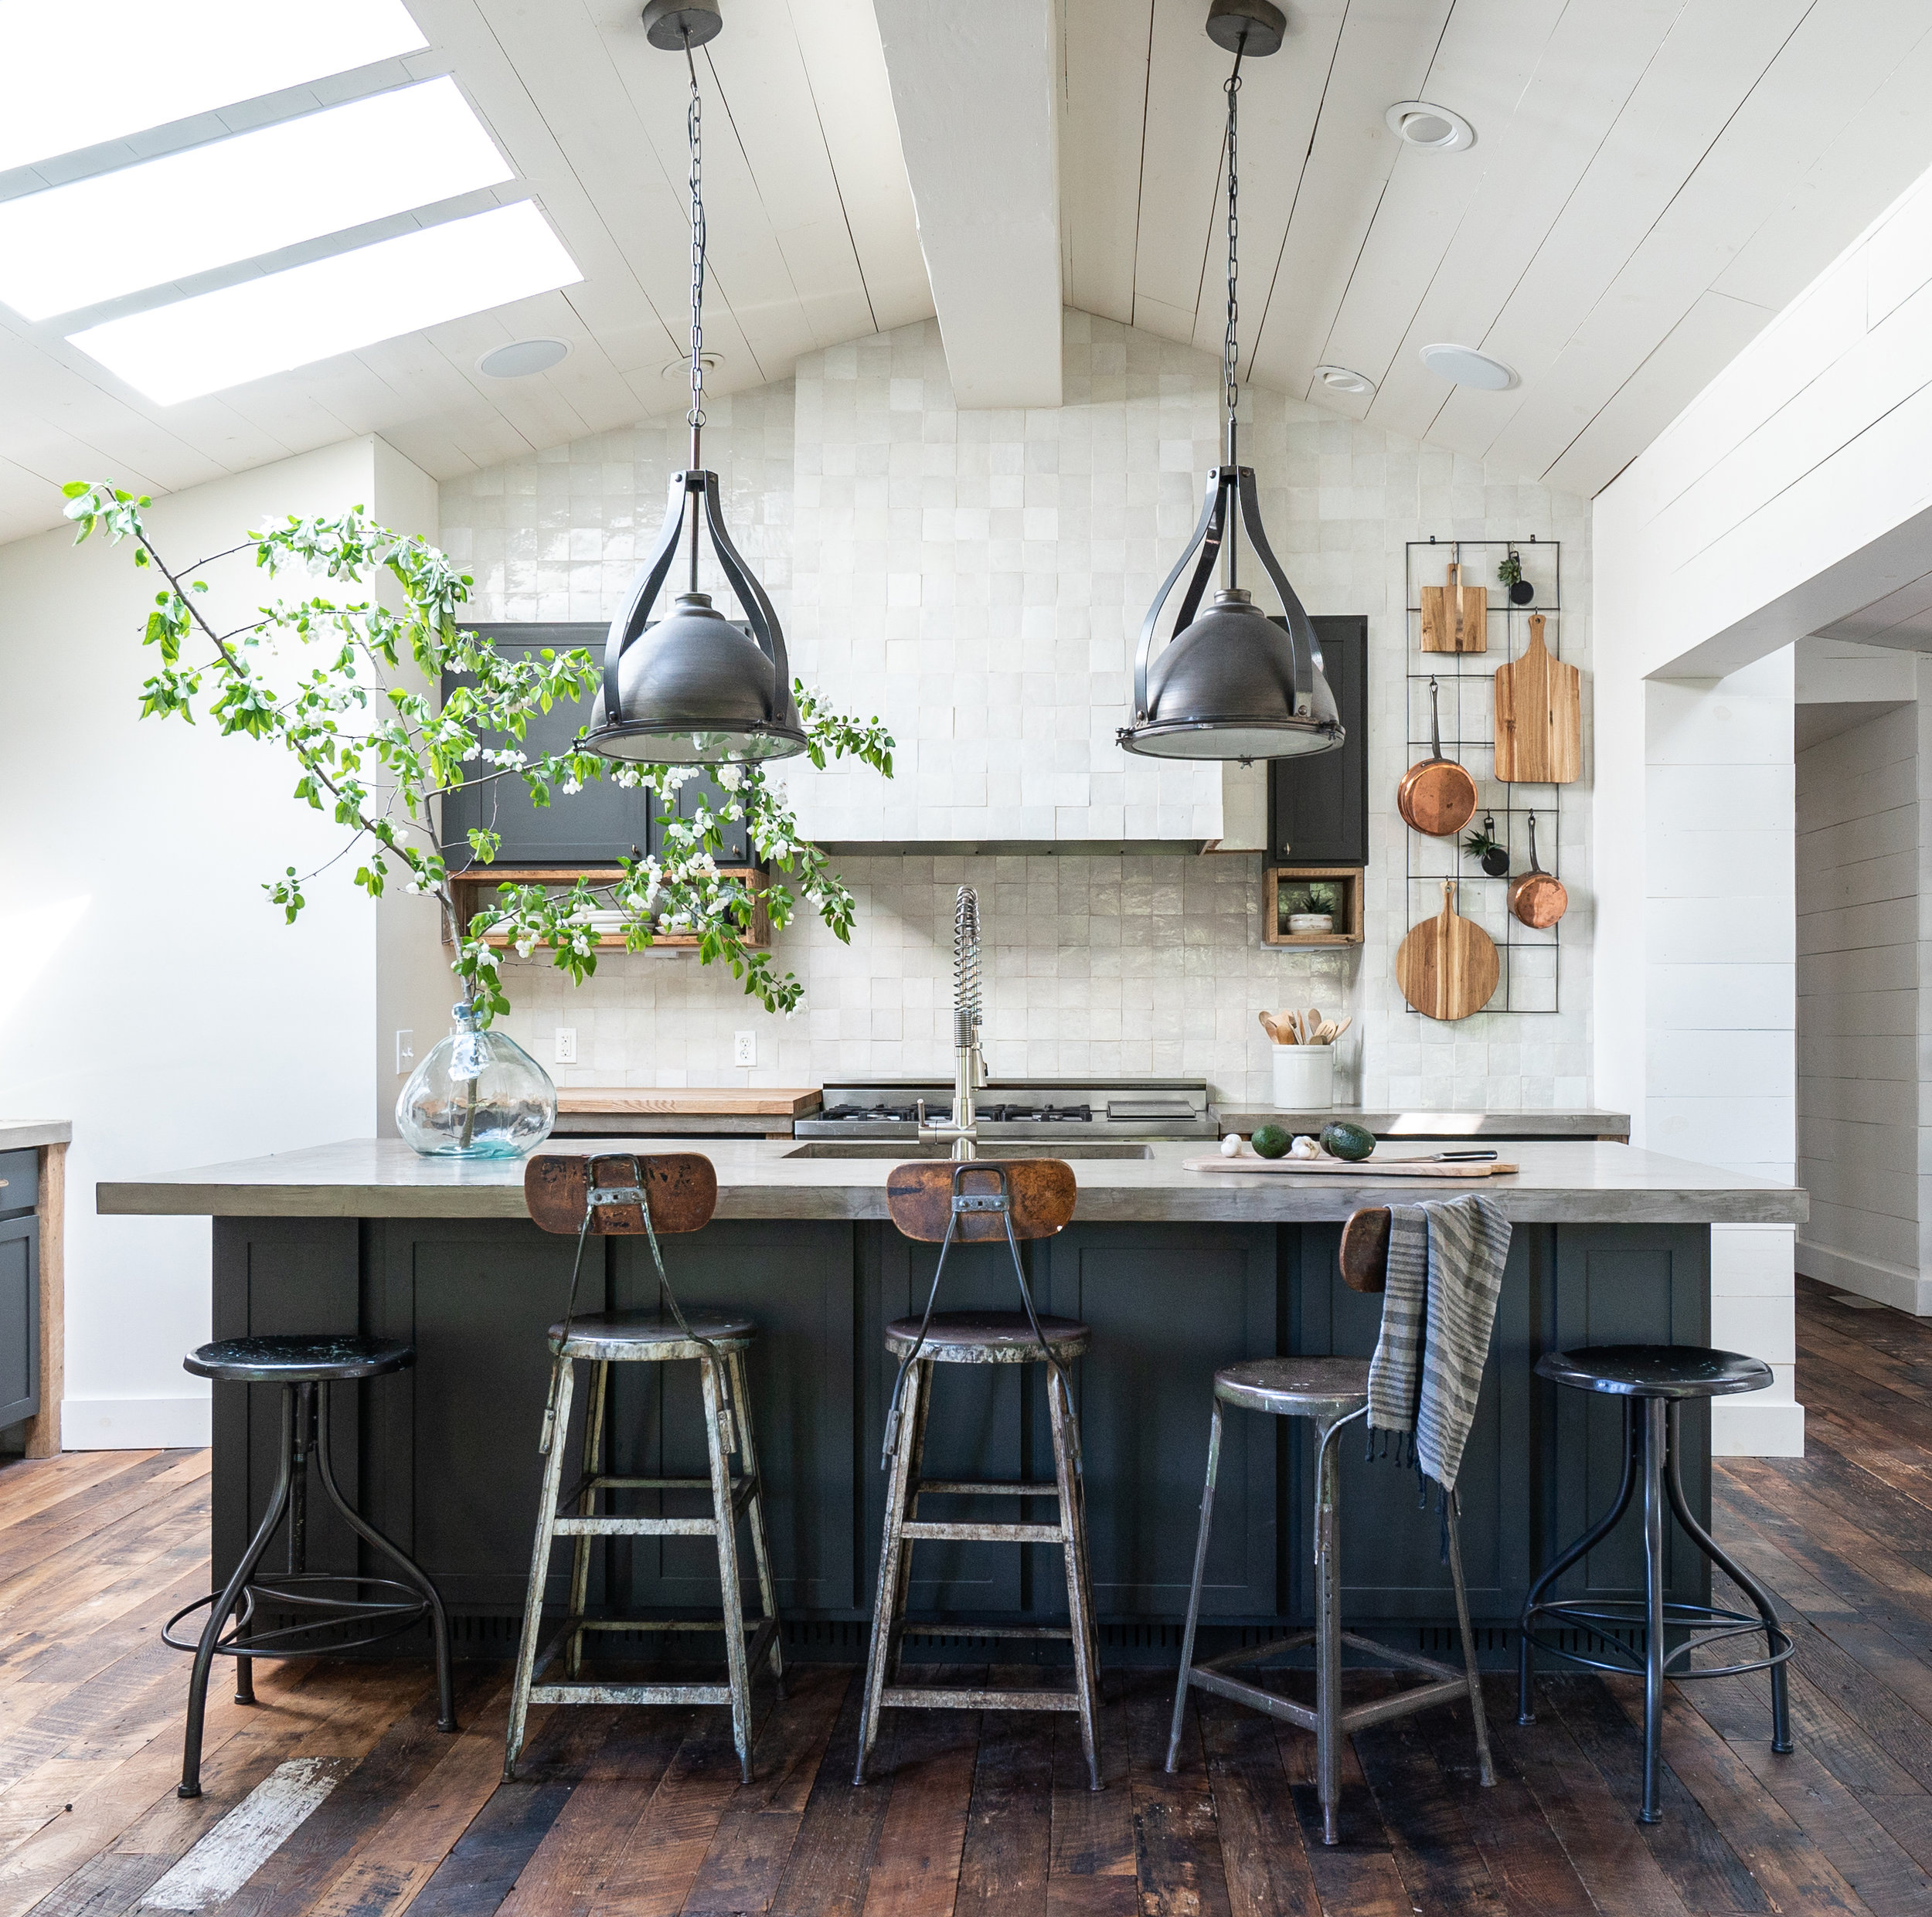 kitchen for projects page.jpg